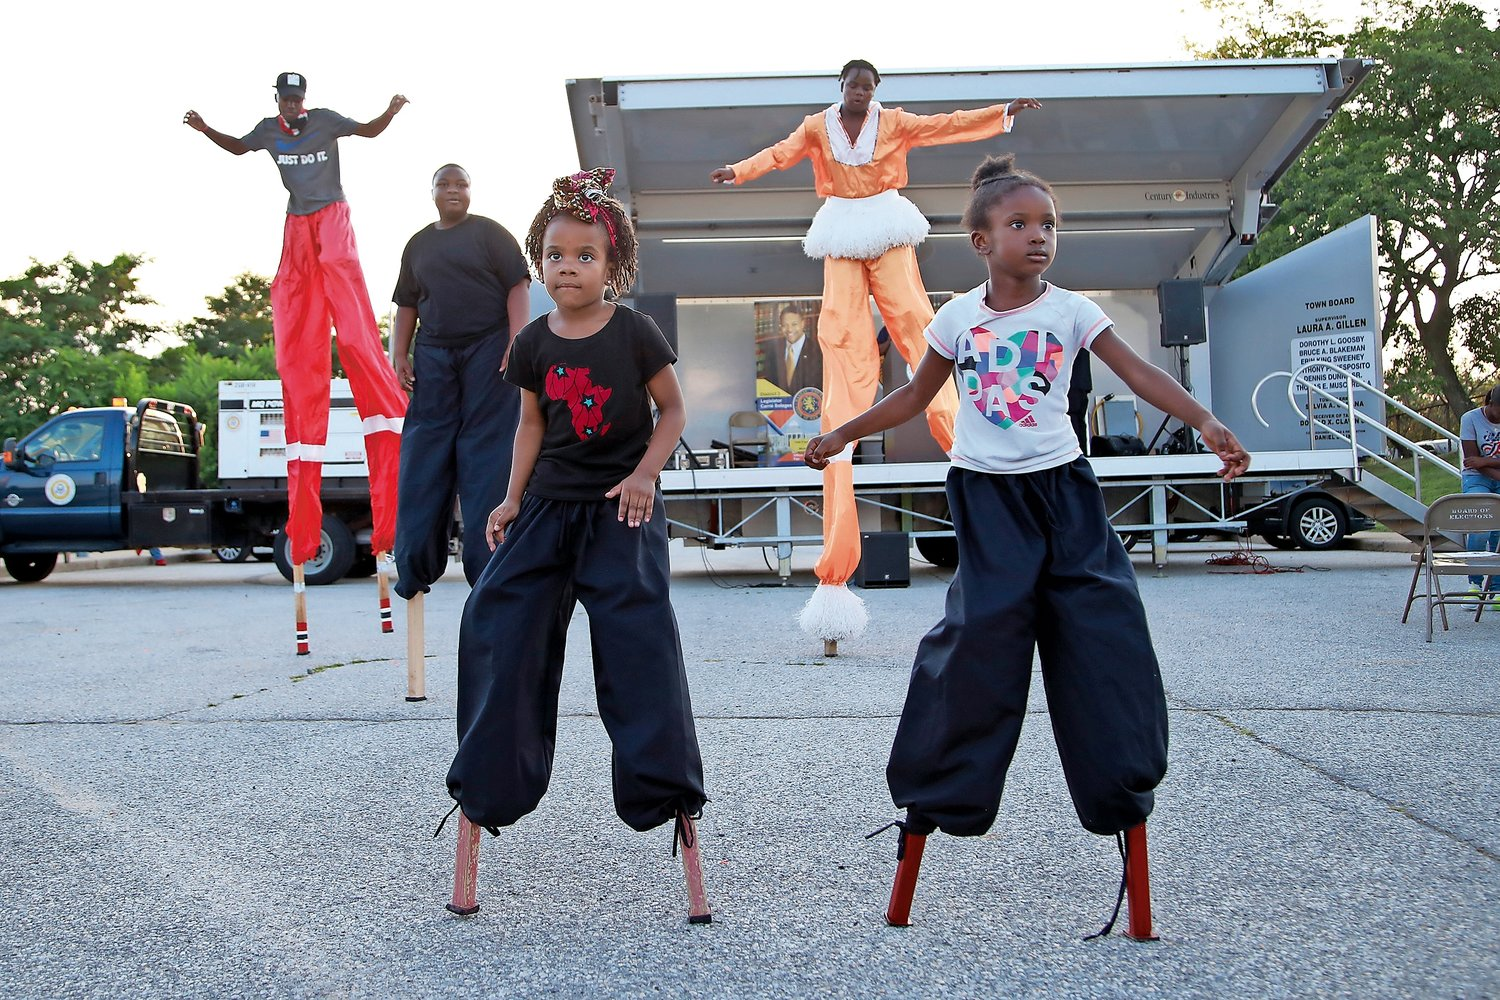 Stilt dancers from Layla's Dance and Drum — clockwise from top left, Shane Collins-Bowen, 16; MJ Nelson, 12; Nyles Adams, 17; and Leilani Theus and Arielle Cohen, both 5 — entertained the crowd at the Elmont National Night Out on Aug. 6.